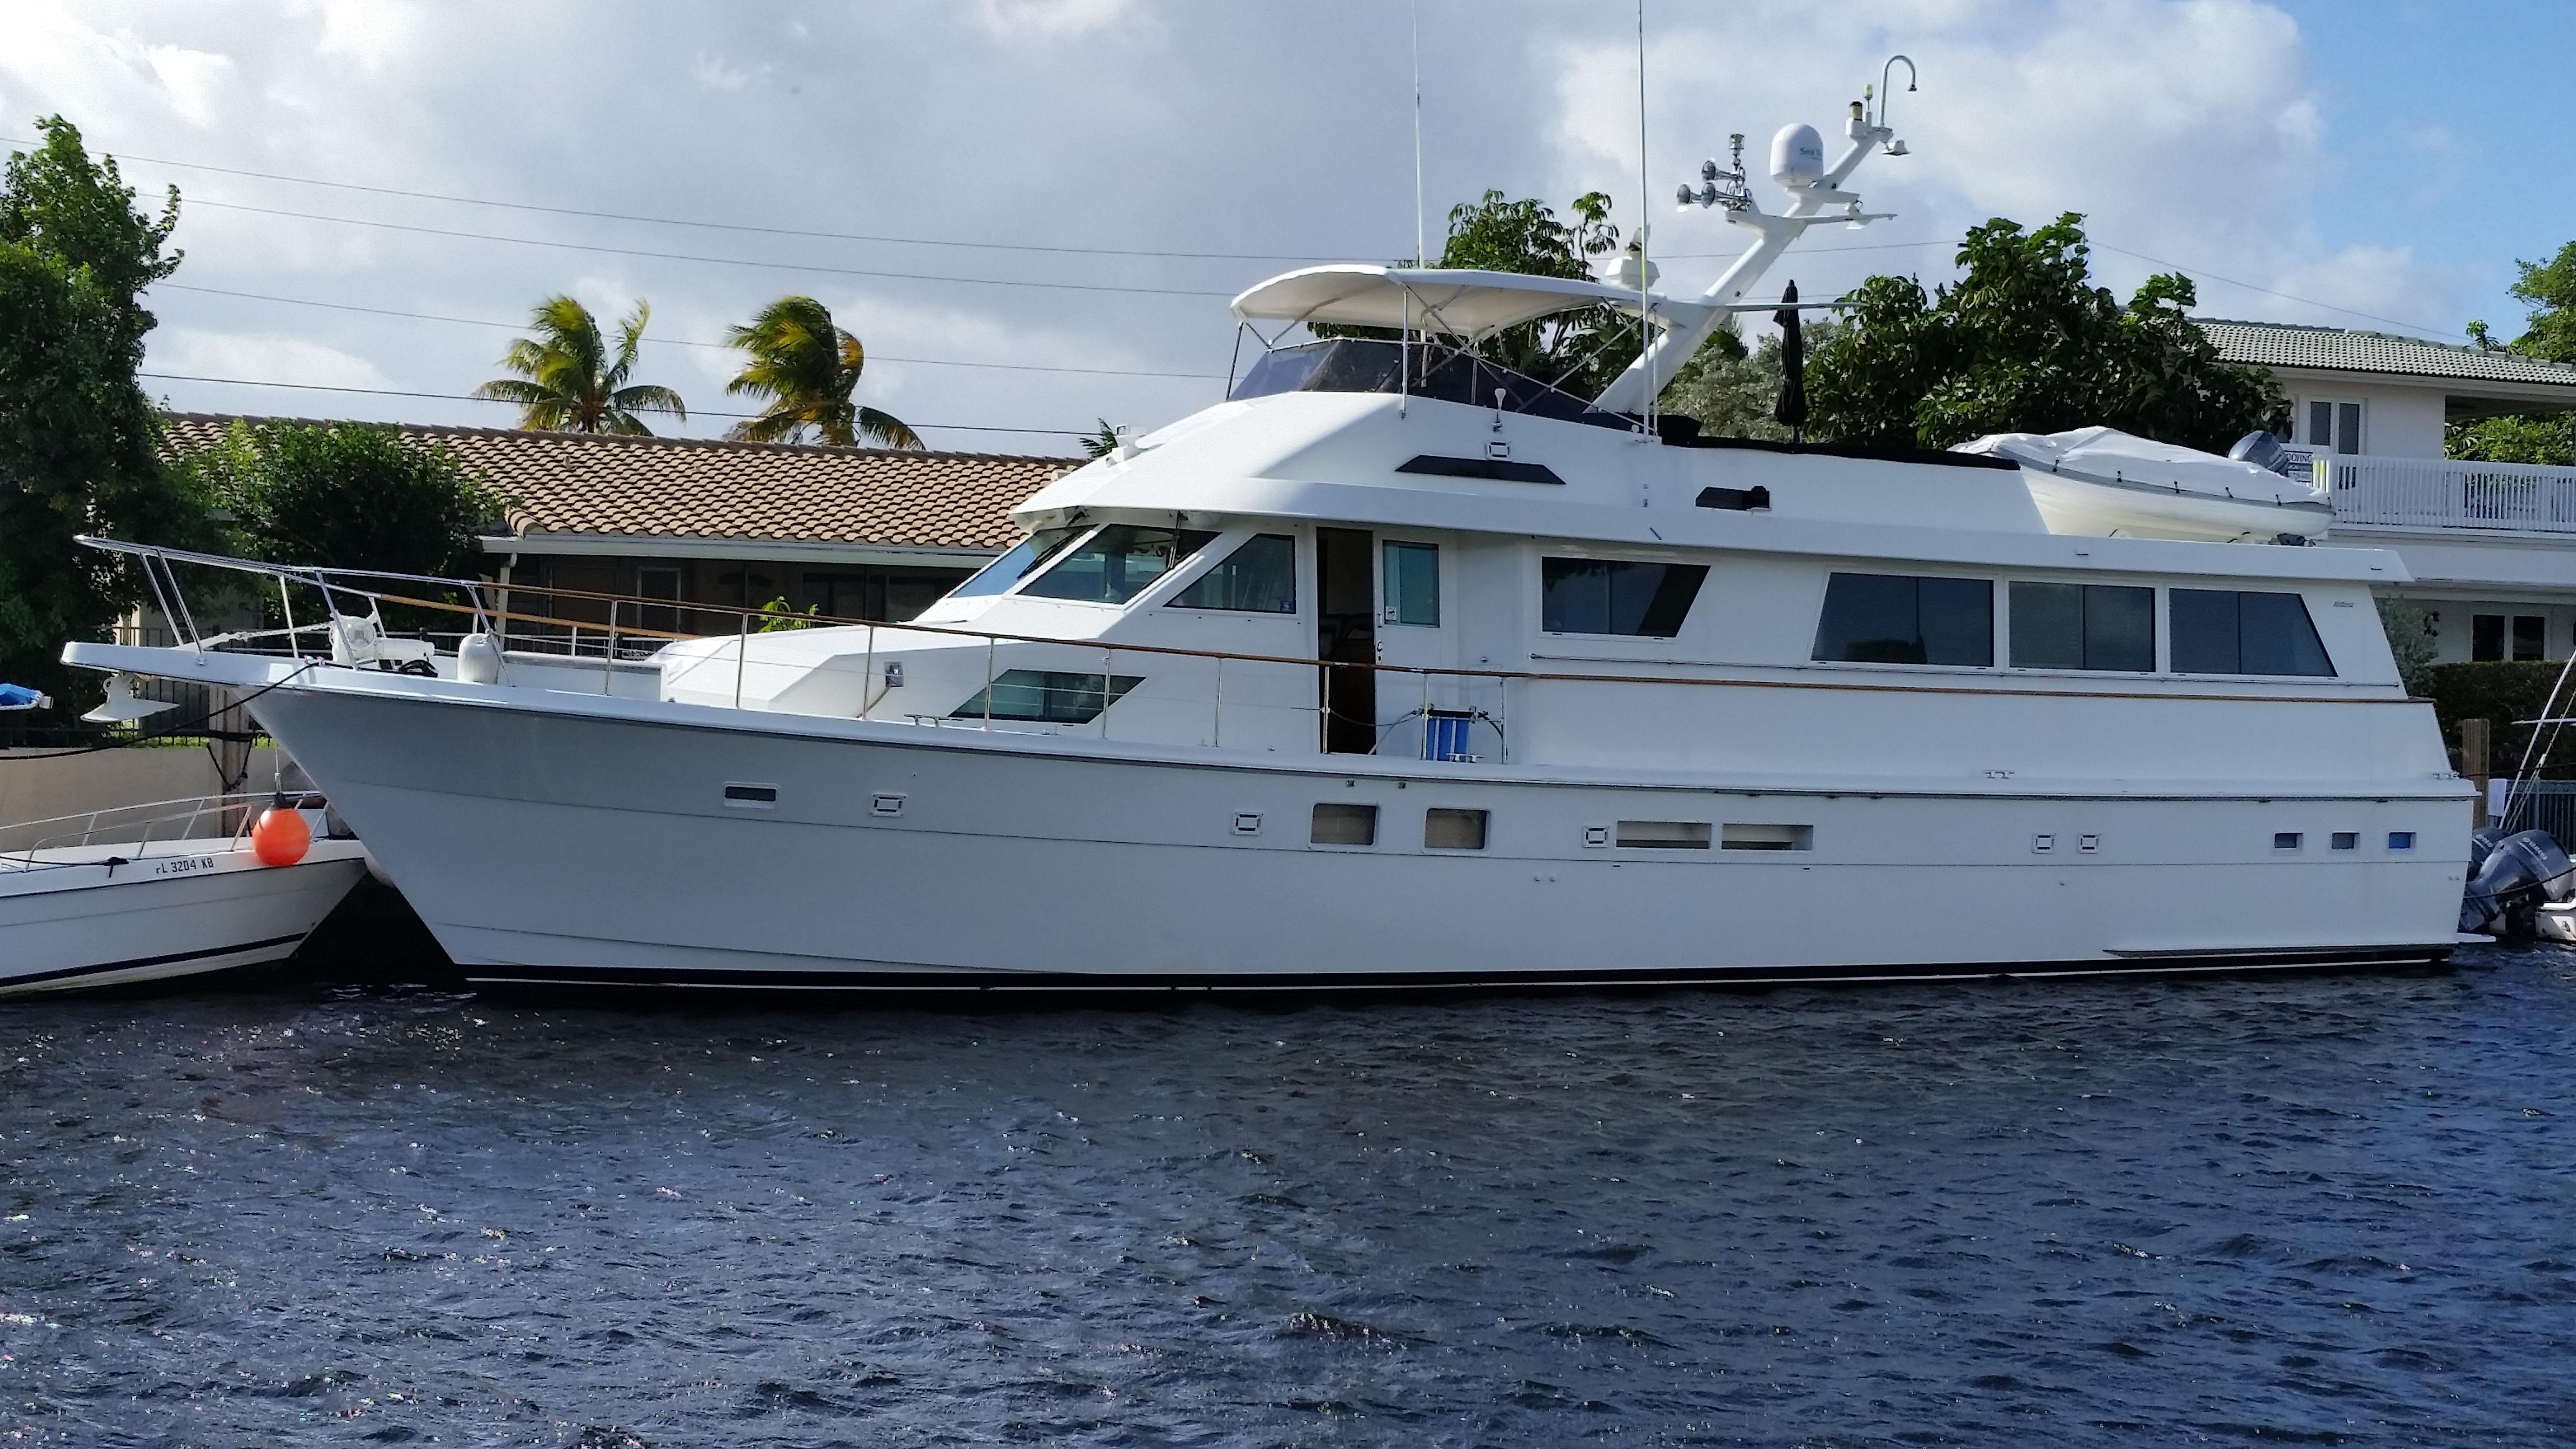 Used Hatteras Yachts For Sale From 60 To 70 Feet